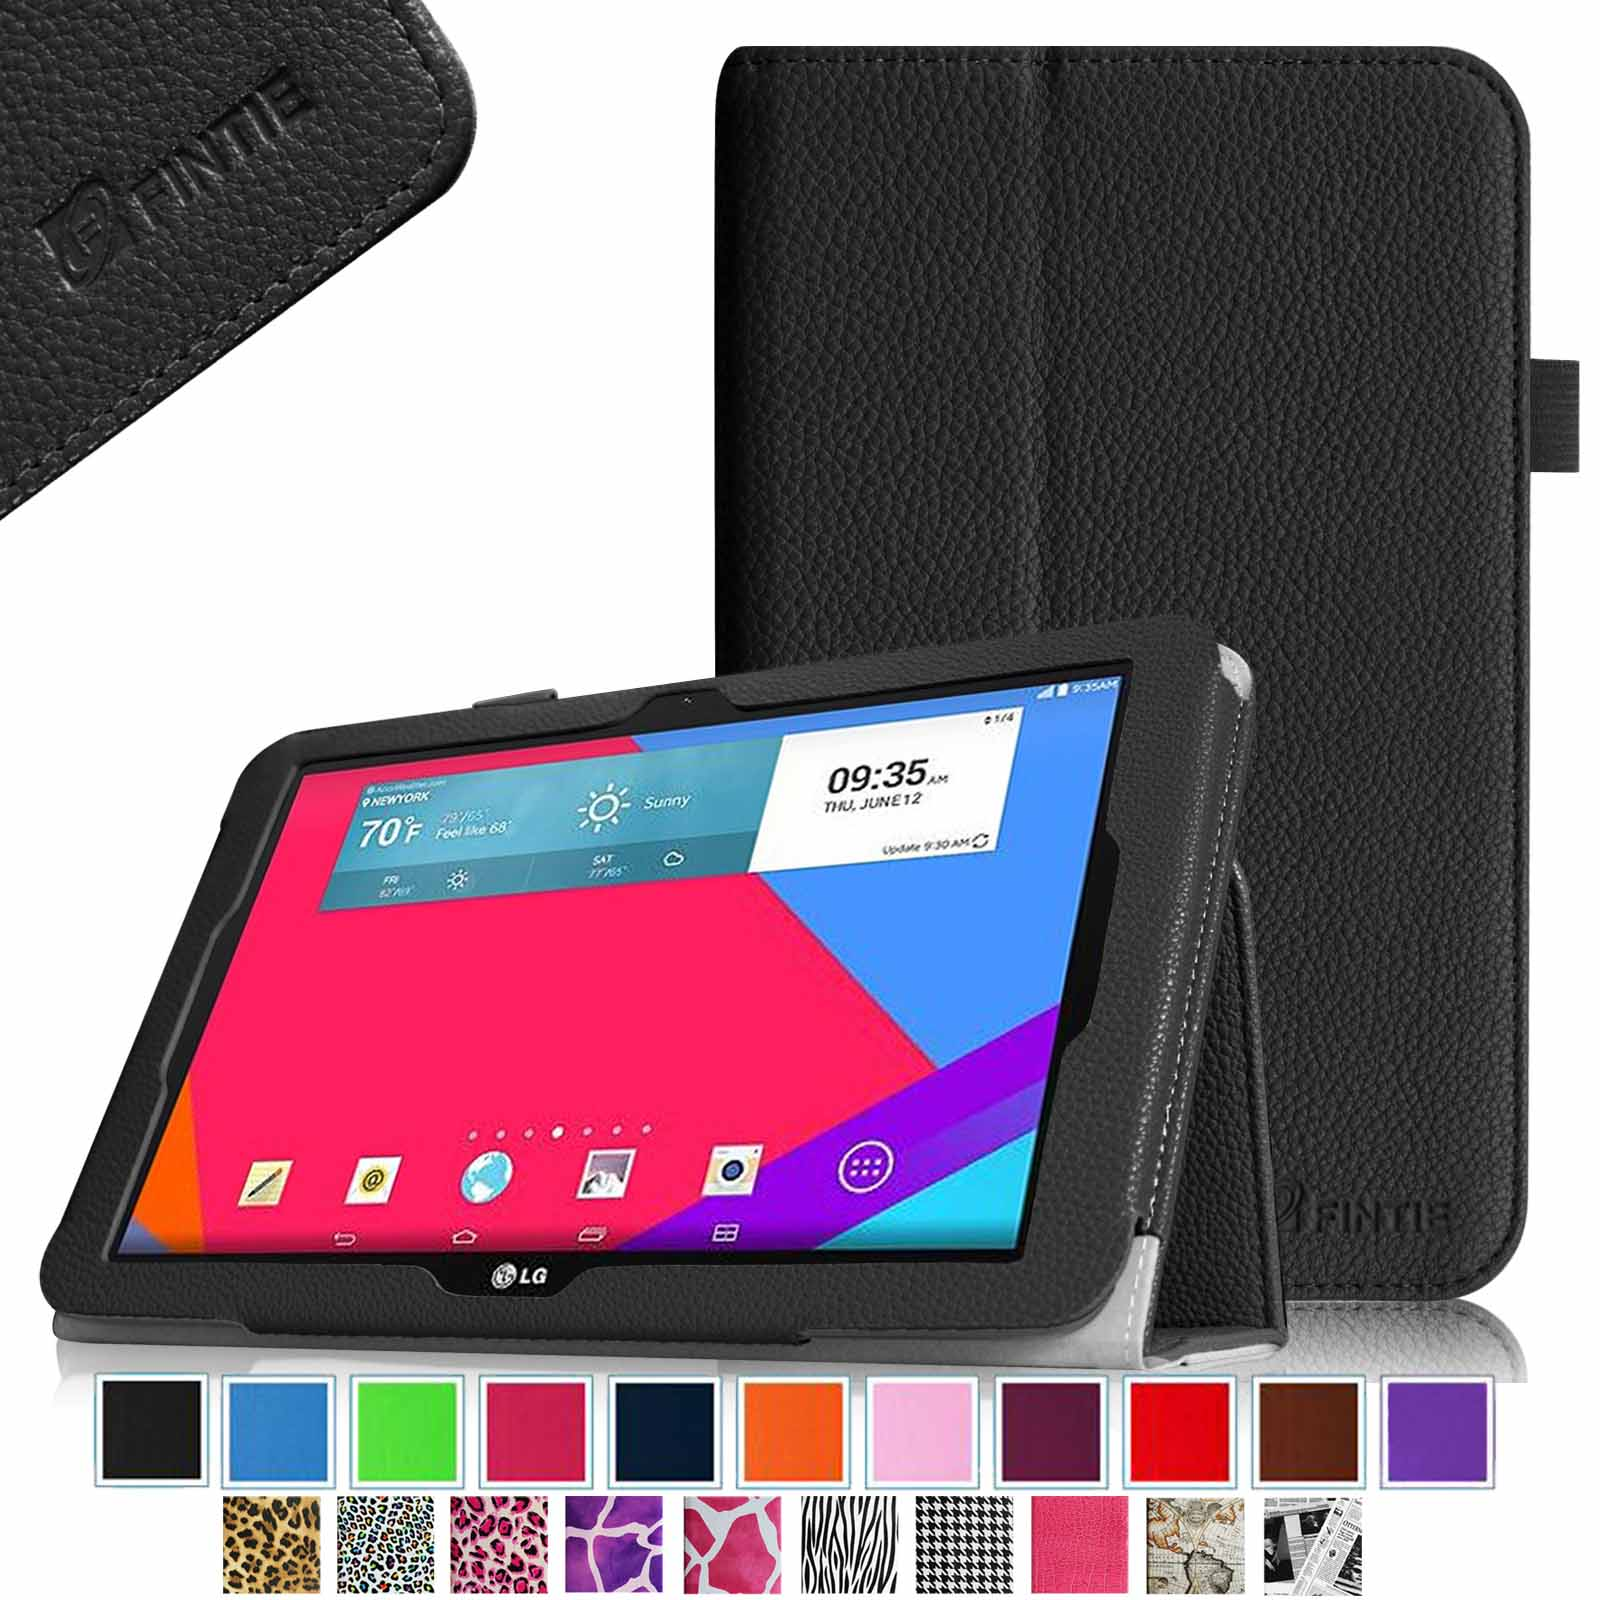 "Fintie LG G Pad 10.1 Folio Case - Premium Leather With Auto Sleep / Wake for LG G Pad V700 10.1"" Android Tablet, Black"